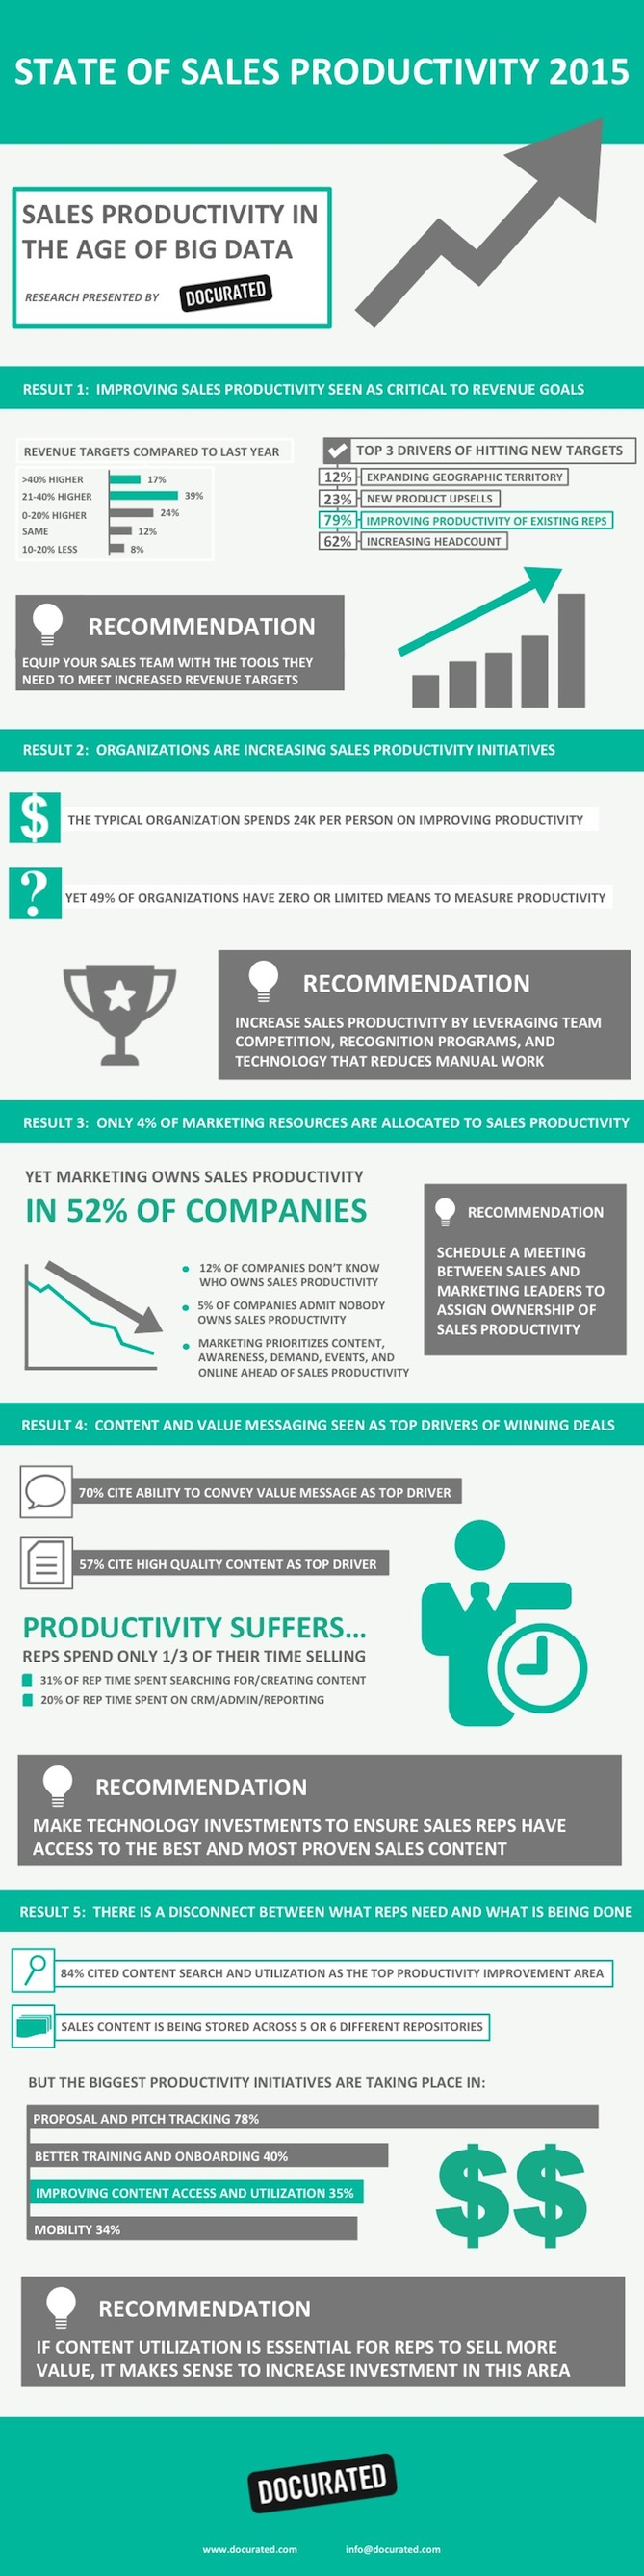 state of sales productivity infographic